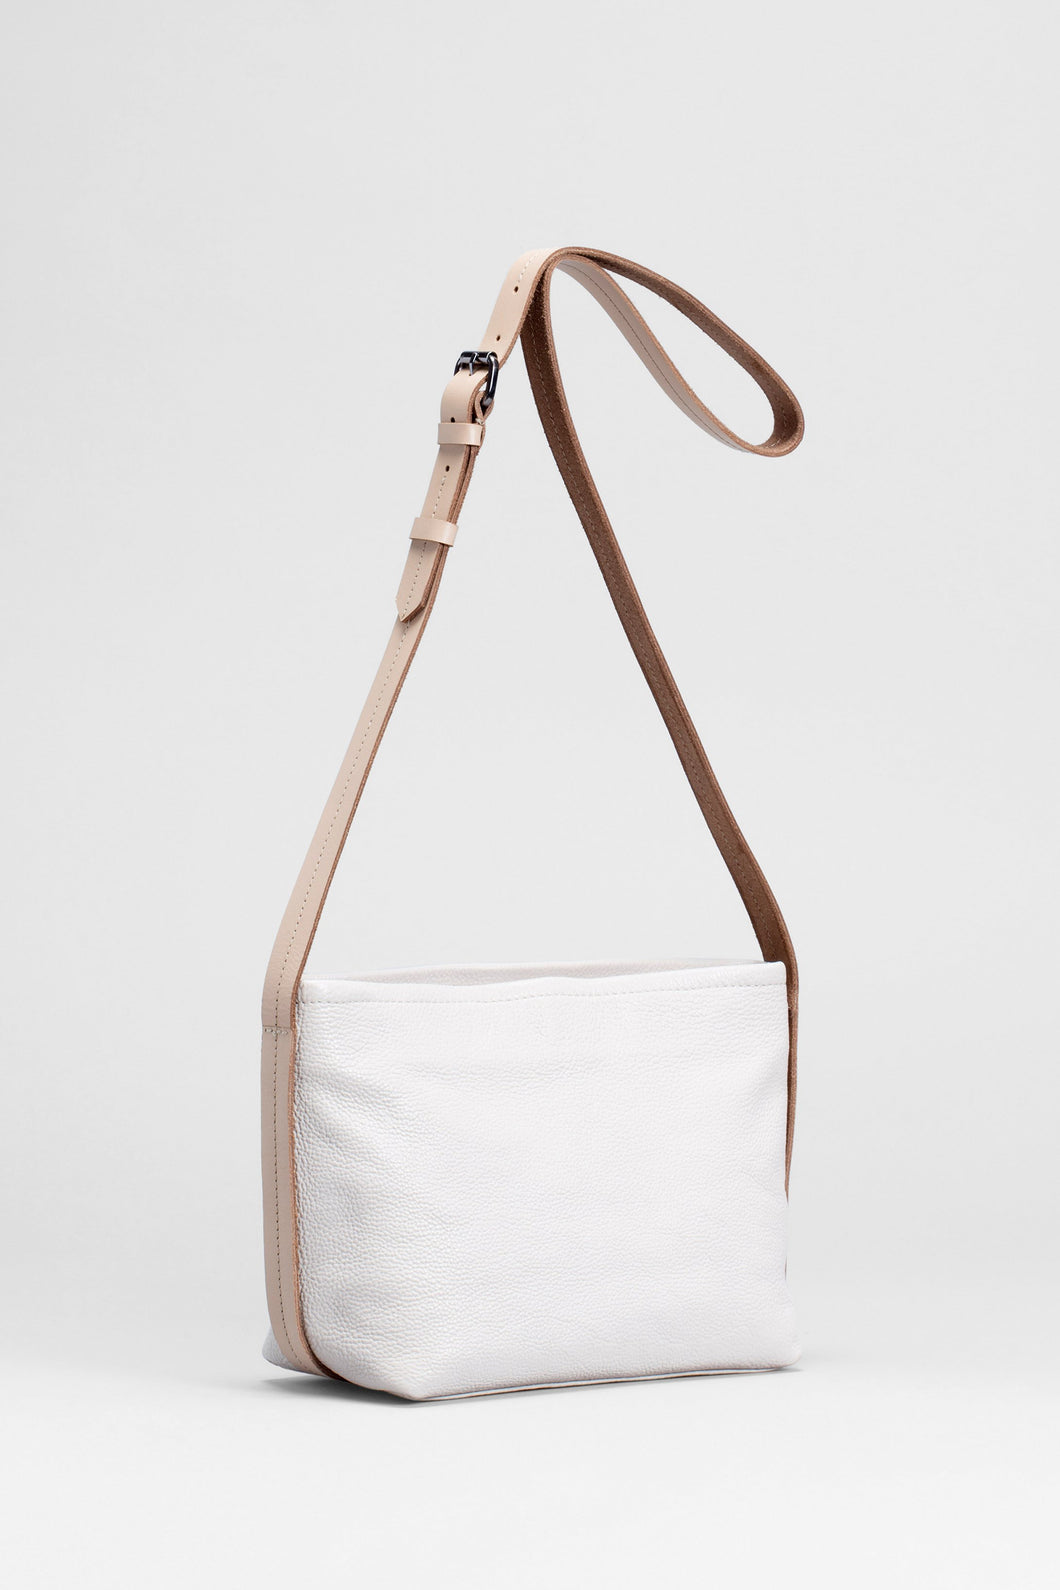 Canutte Bag